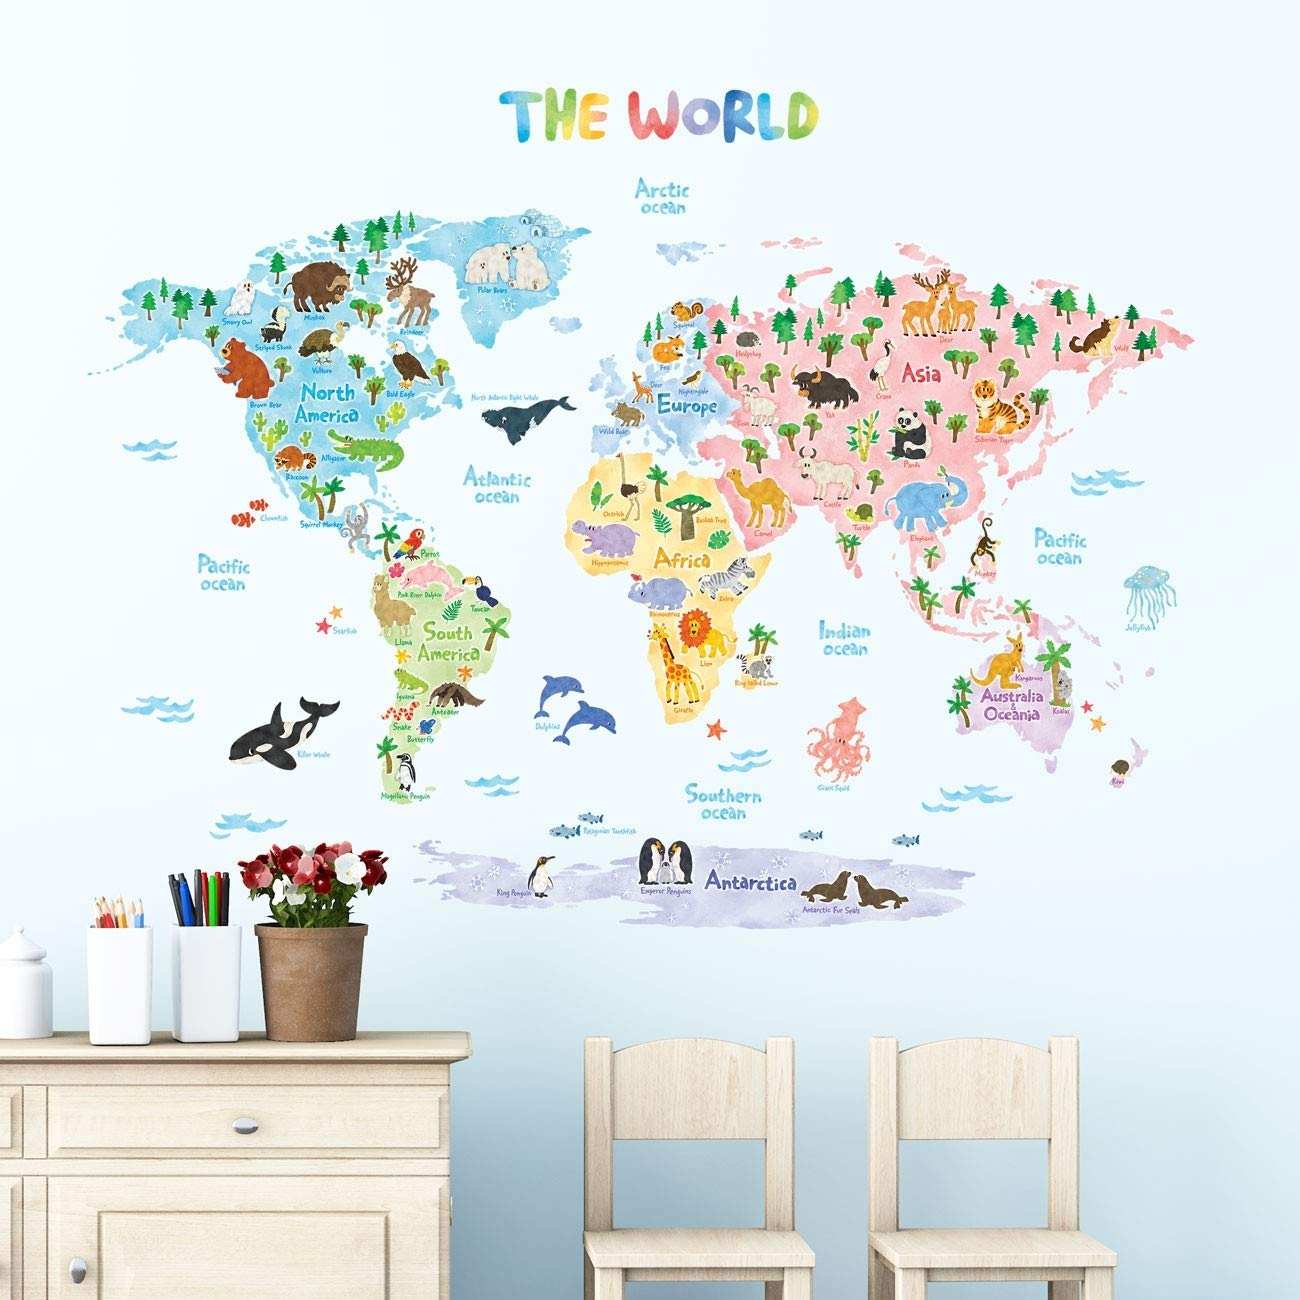 World Map Removable Wall Sticker.Amazon Com Decowall Dlt 1615 Animal World Map Kids Wall Decals Wall